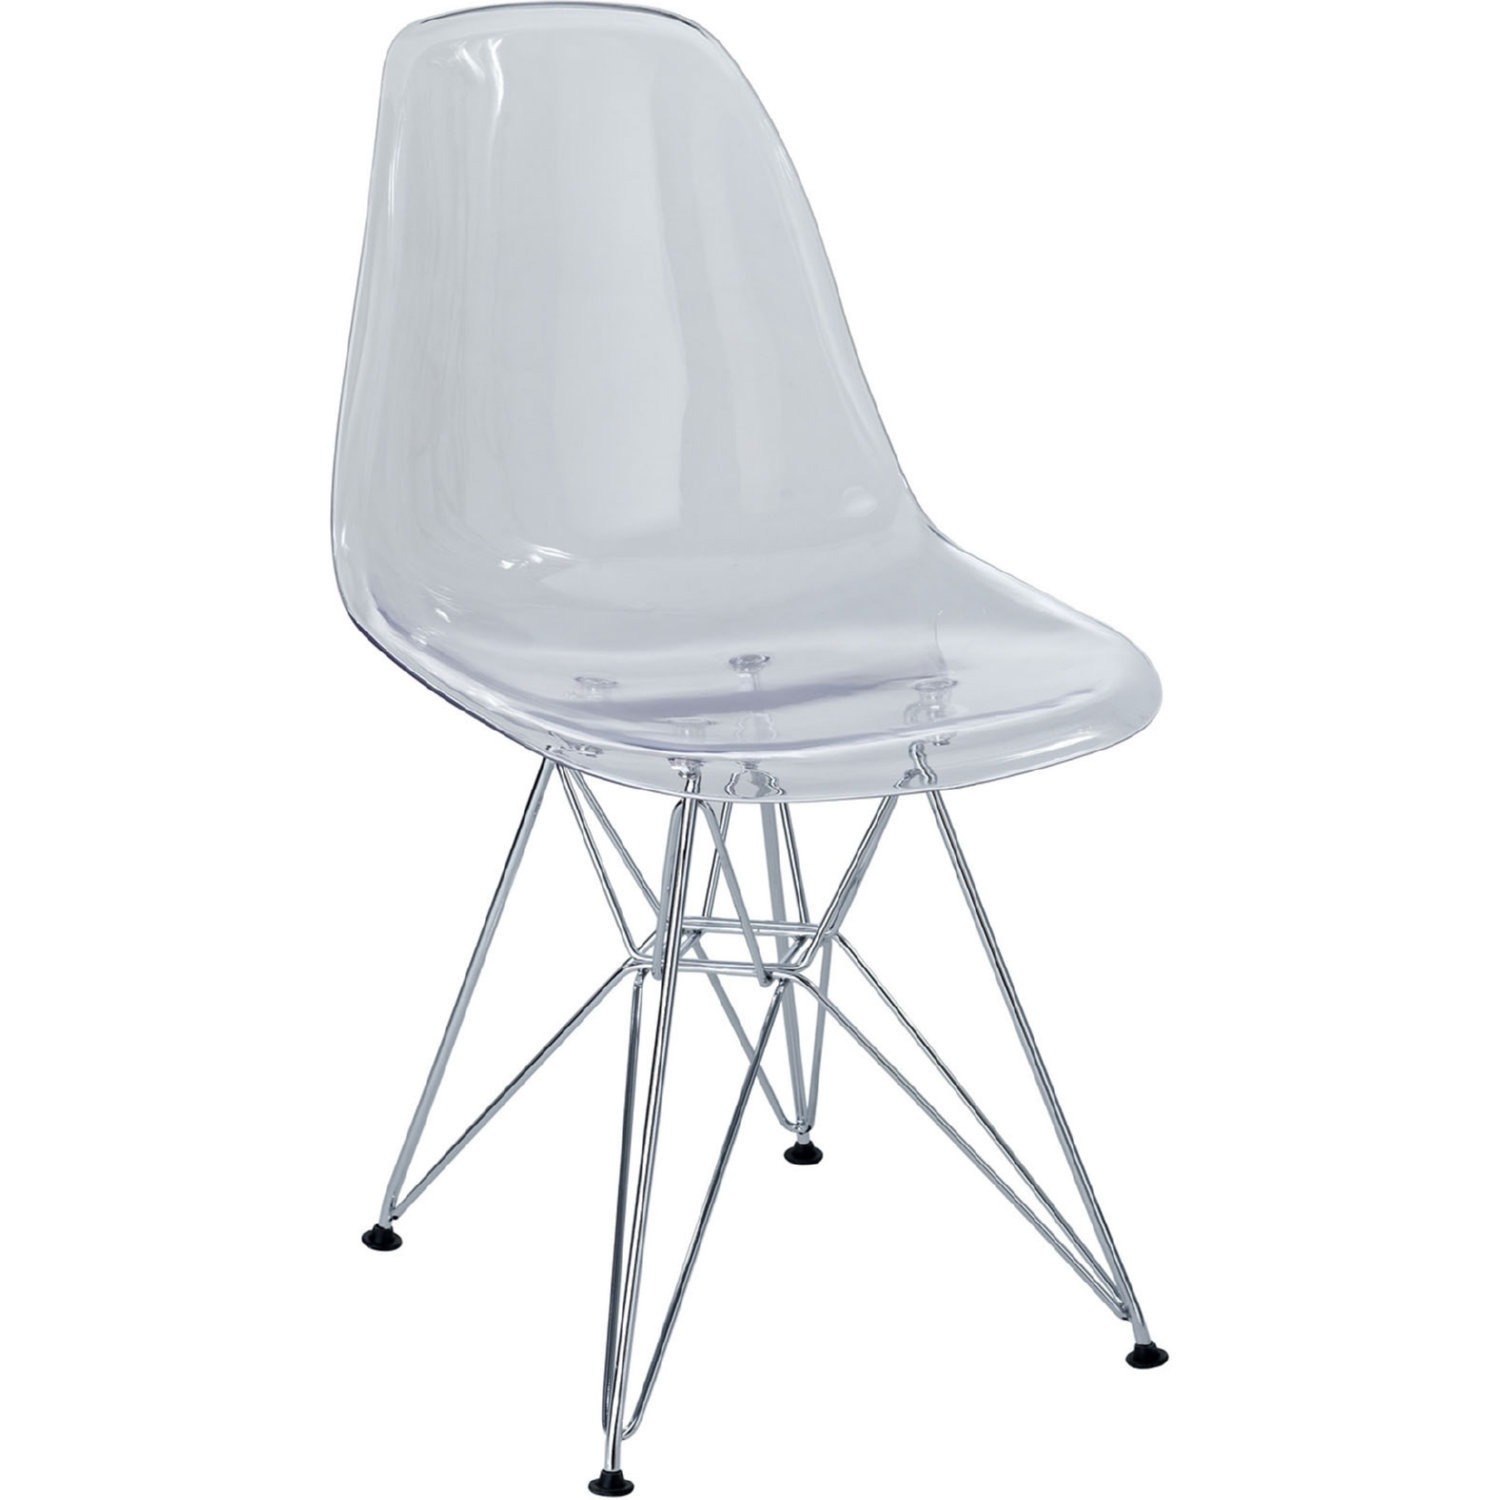 Modern Dining Chair In Clear Finish W/ Wire Legs - image-0